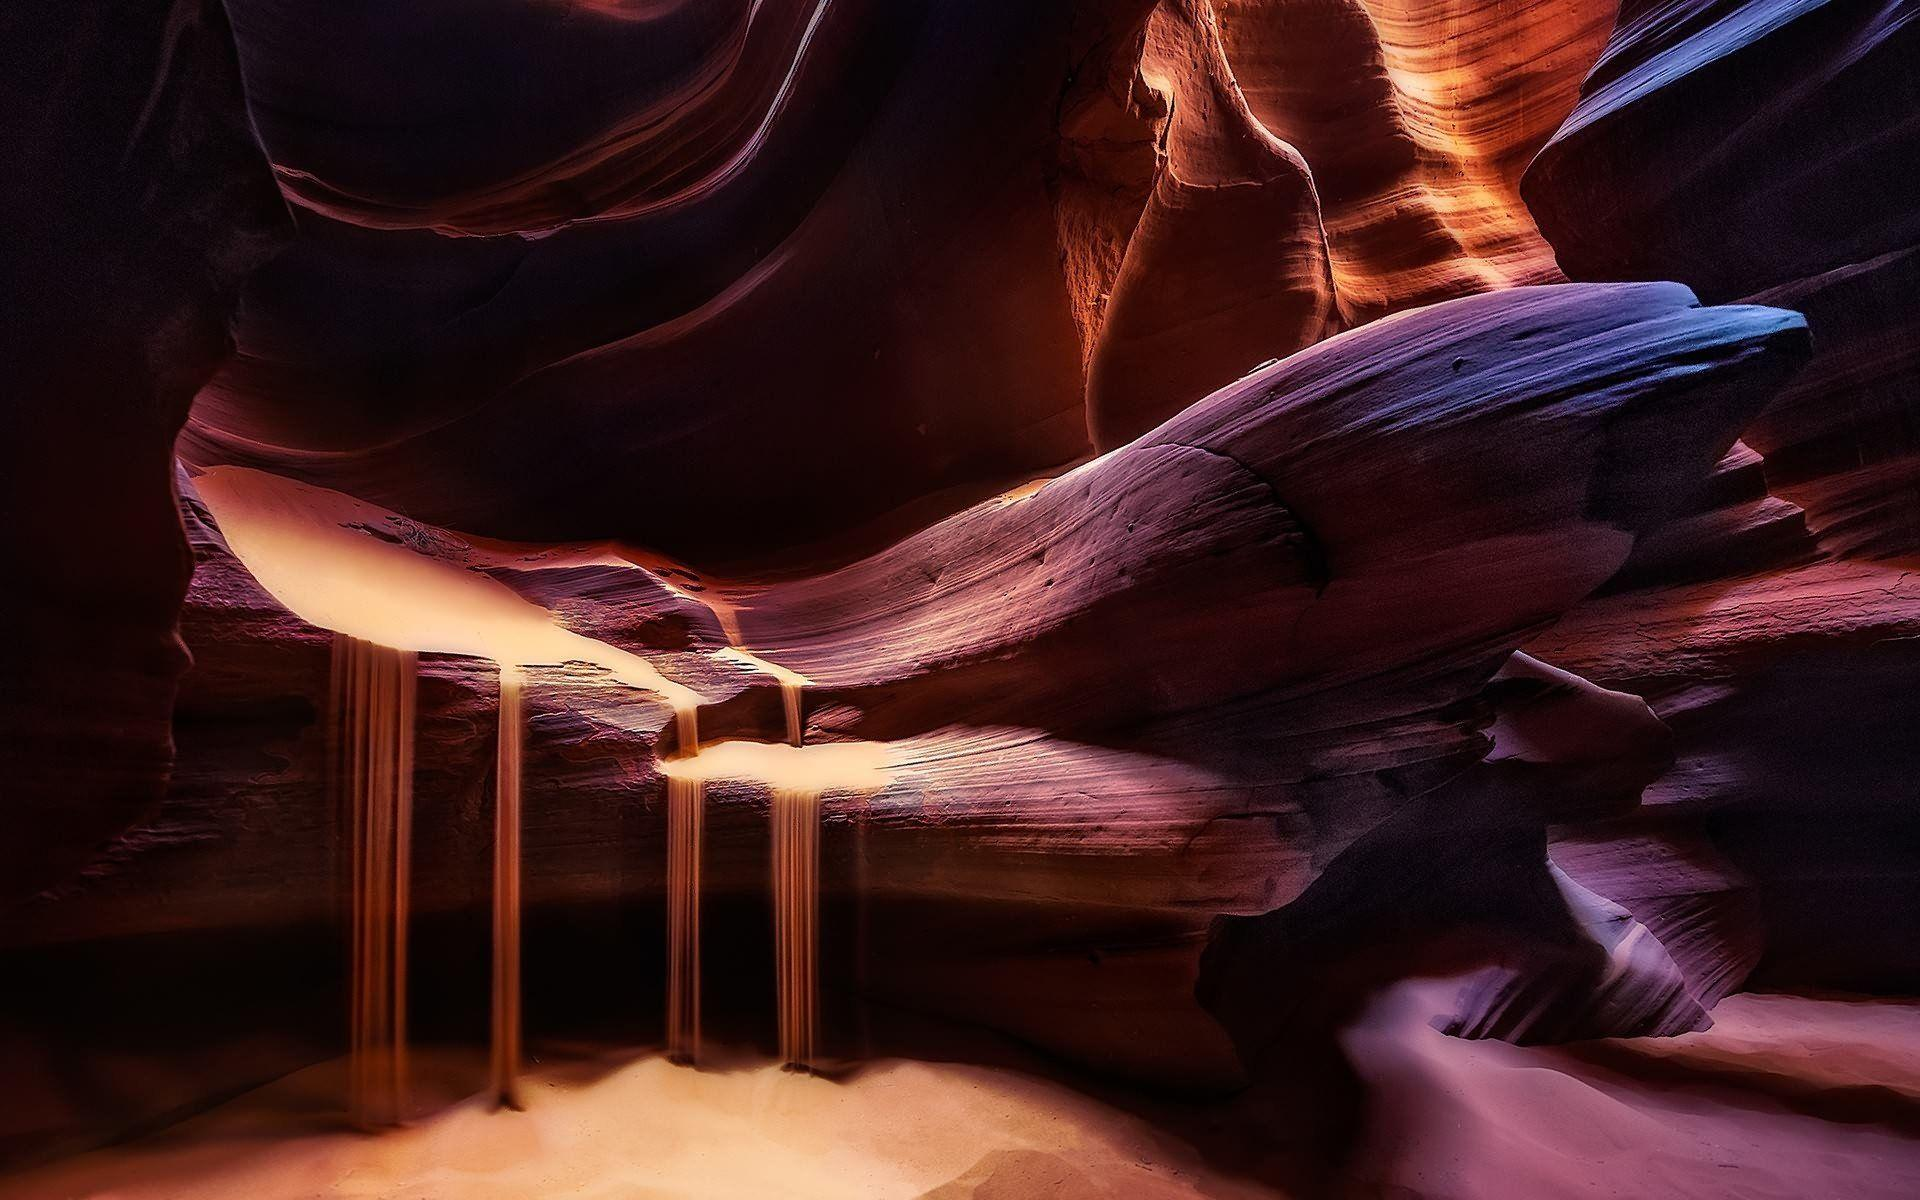 67 Antelope Canyon HD Wallpapers